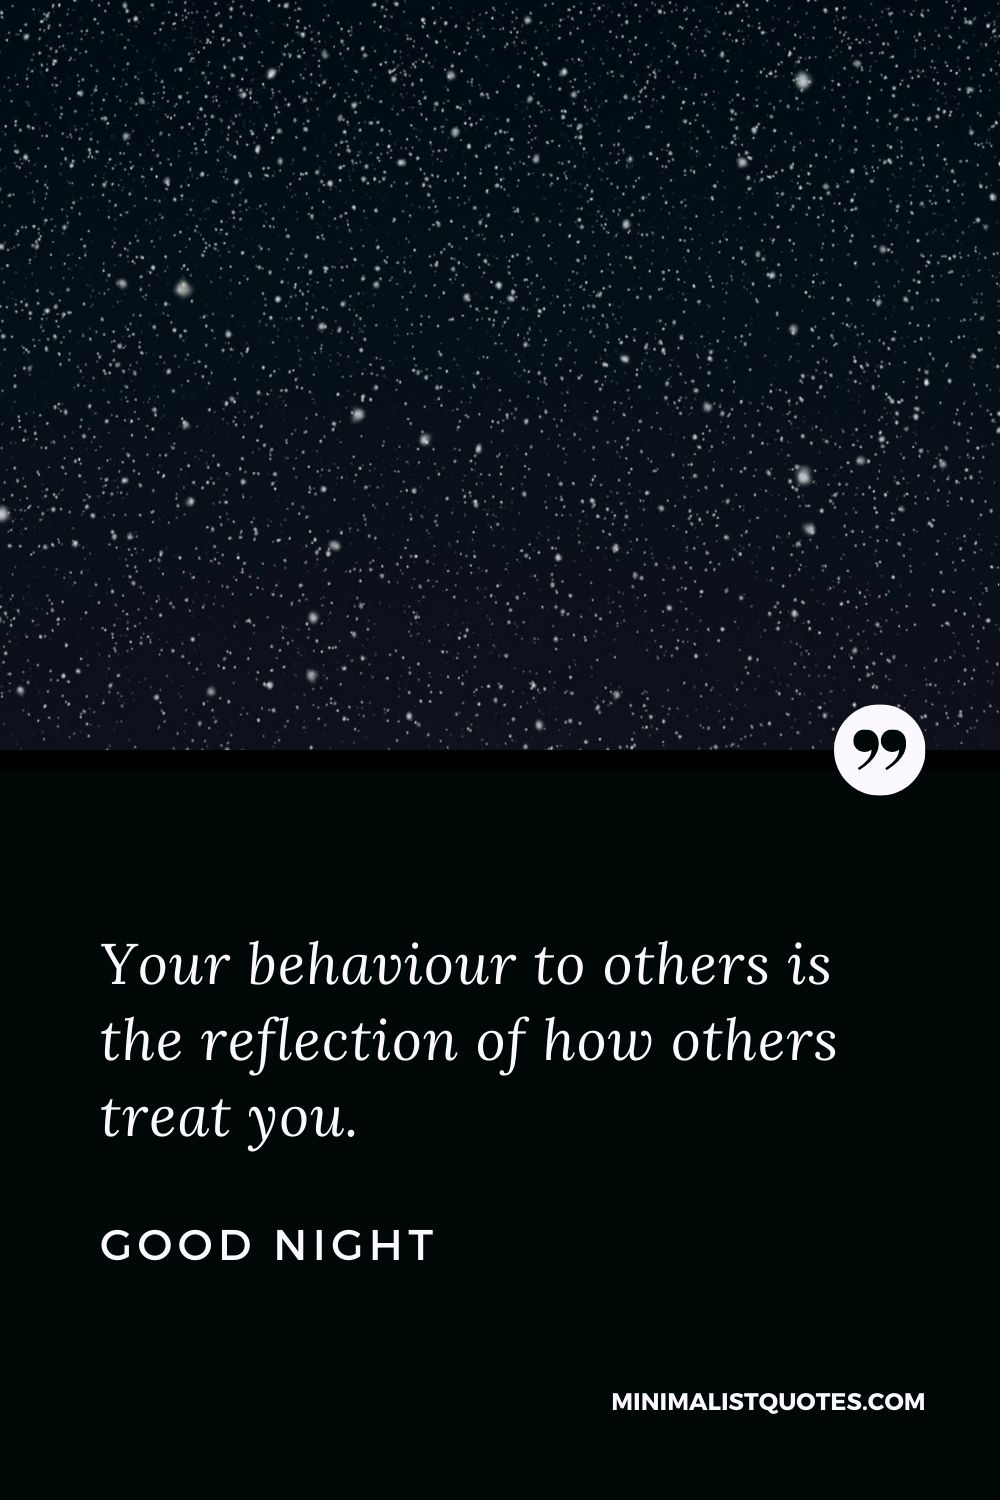 Good Night Wishes - Your behaviour to others is the reflection of how others treat you.